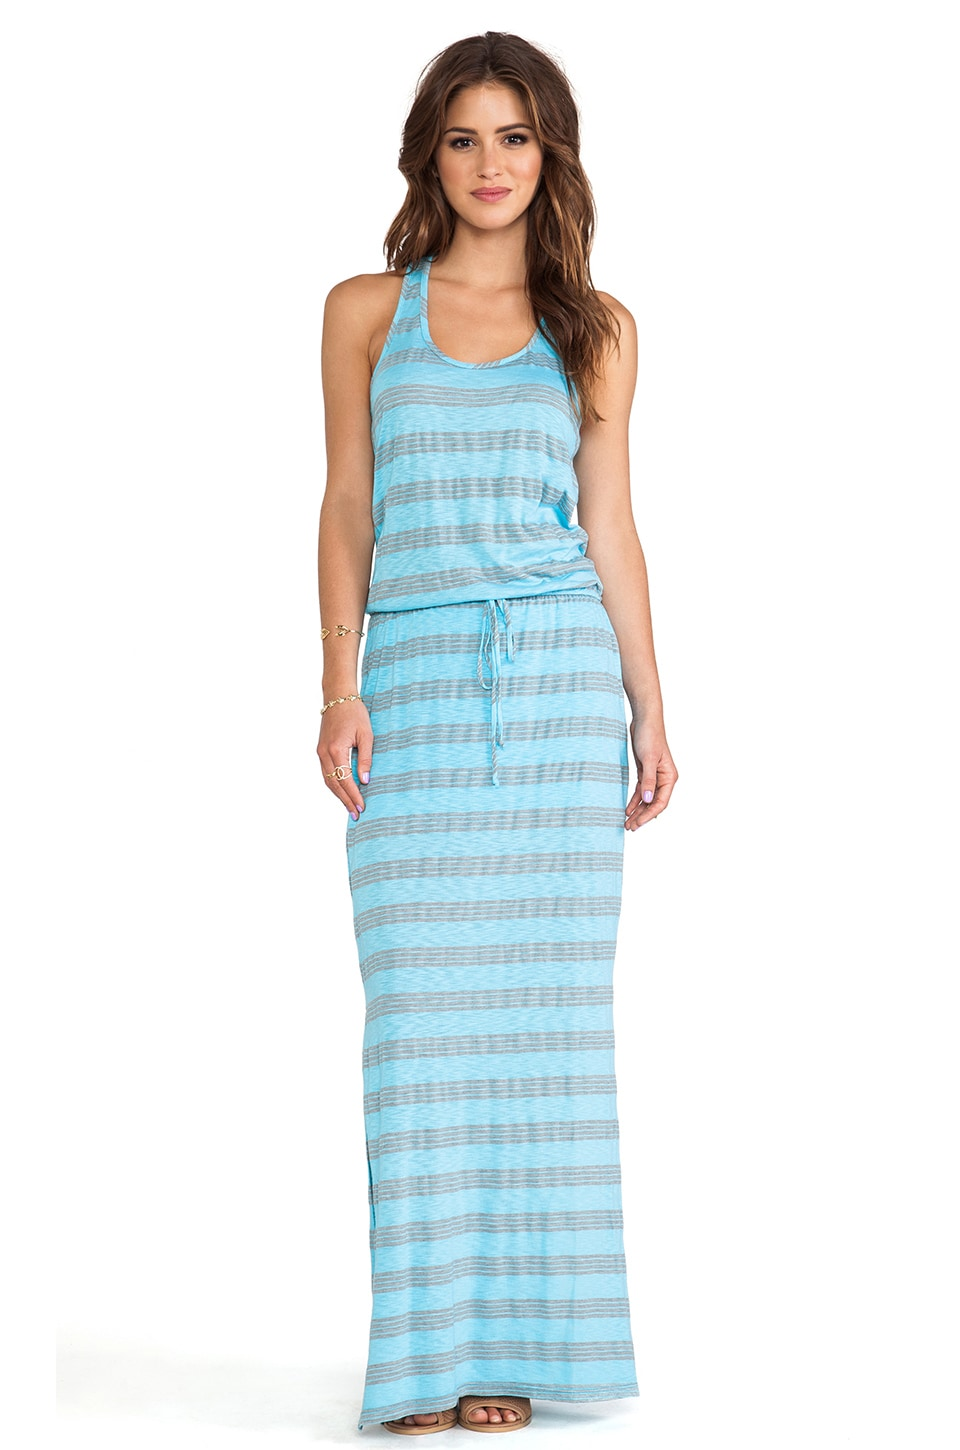 C&C California Striped Maxi Dress in Scuba Blue